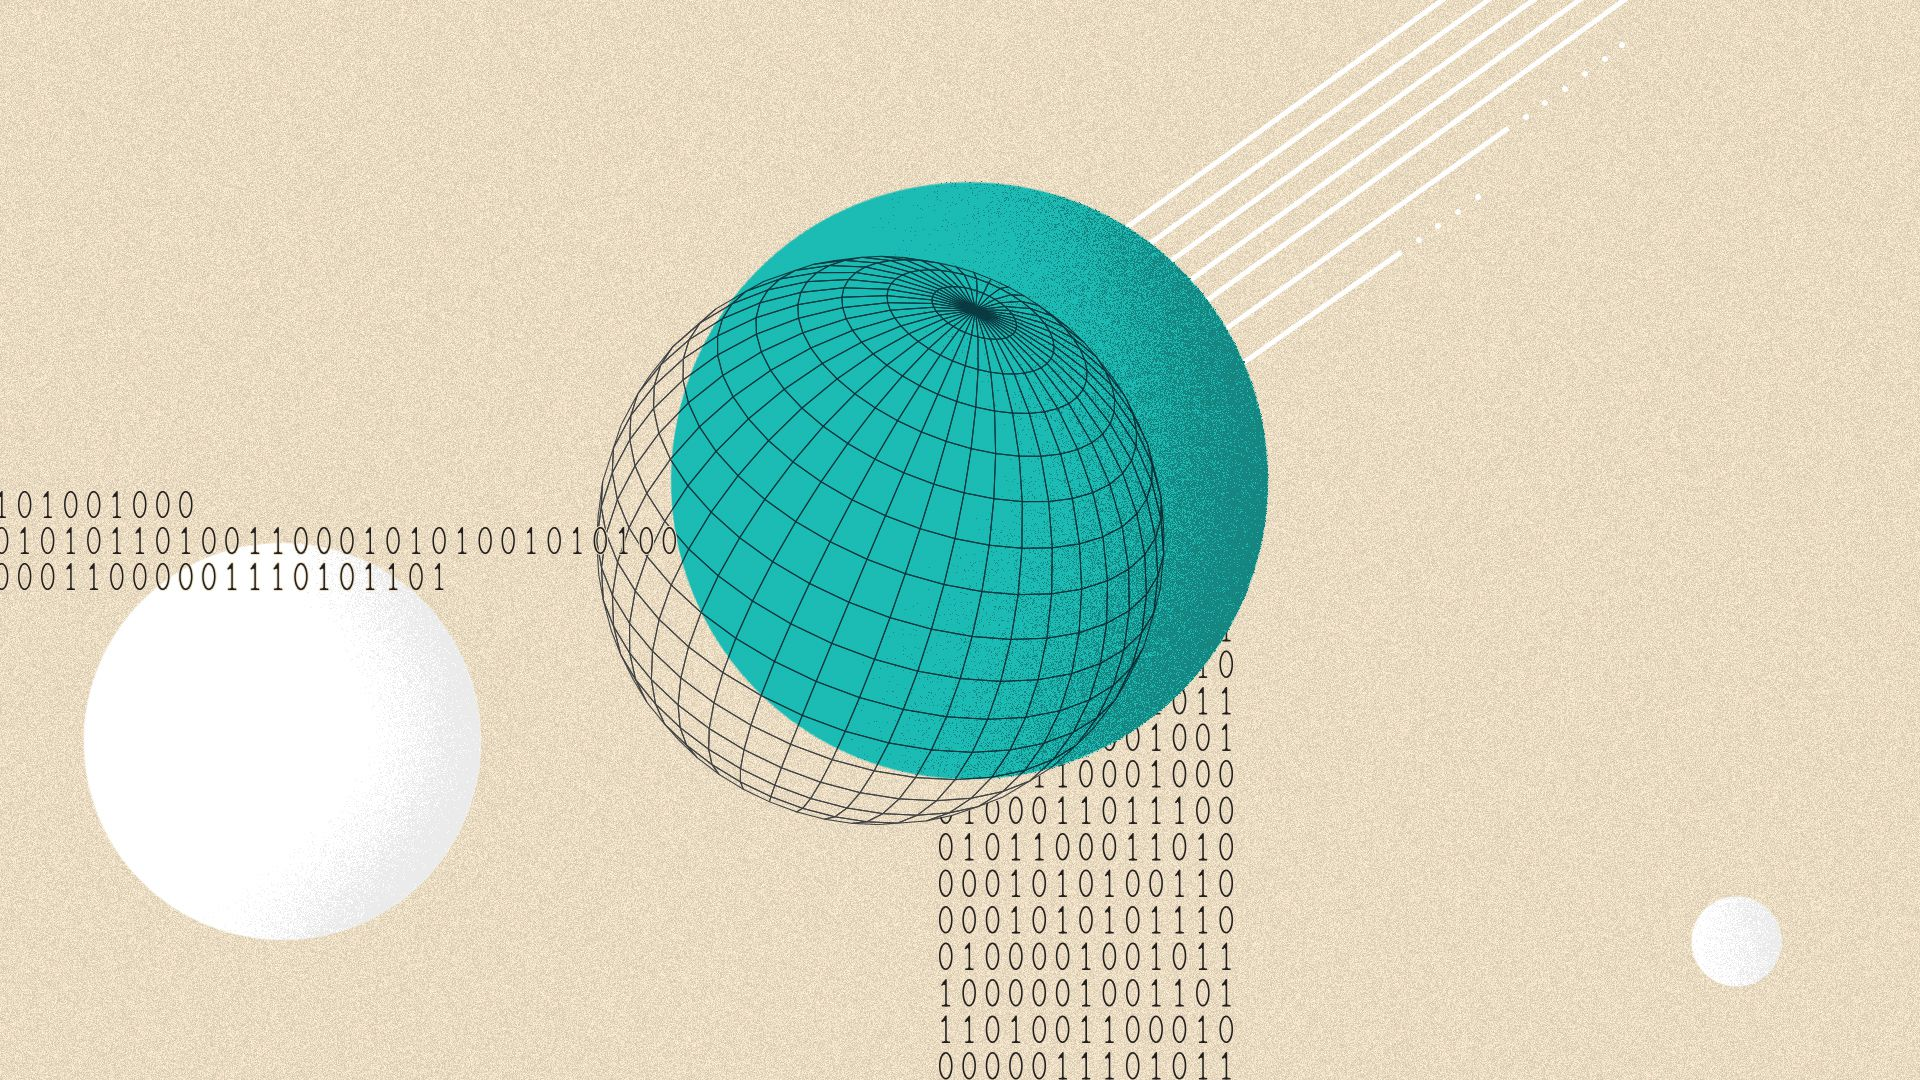 Illustrated collage of circular shapes, spheres and binary code.